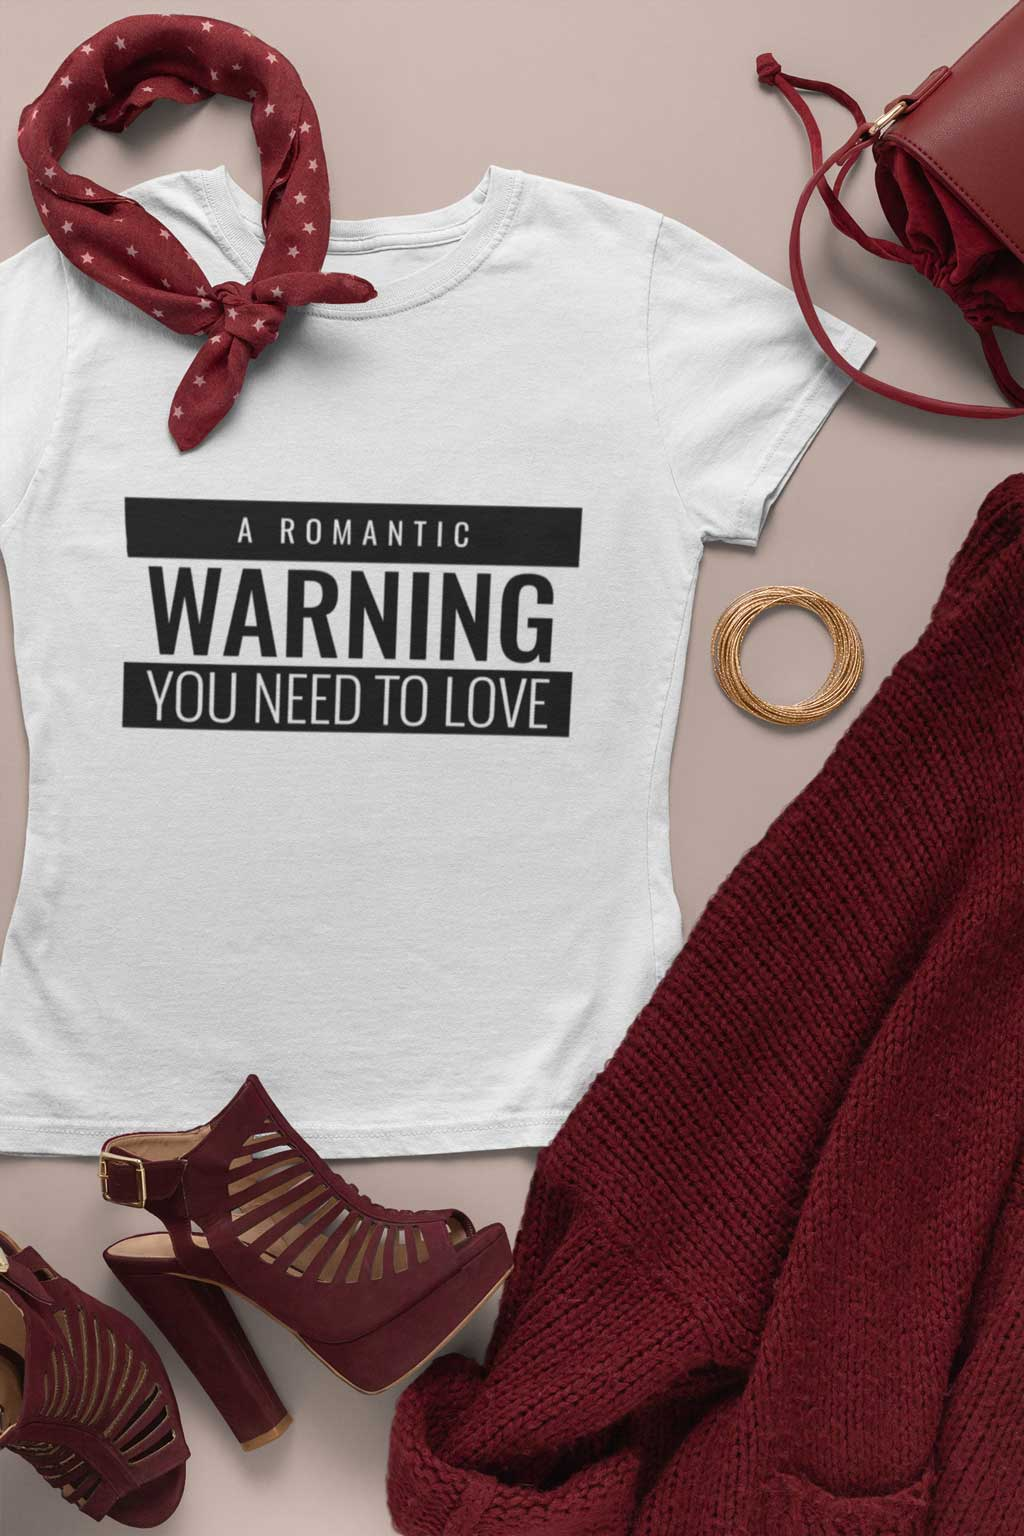 a romantic warning guru t shirt warning collection 5 2019